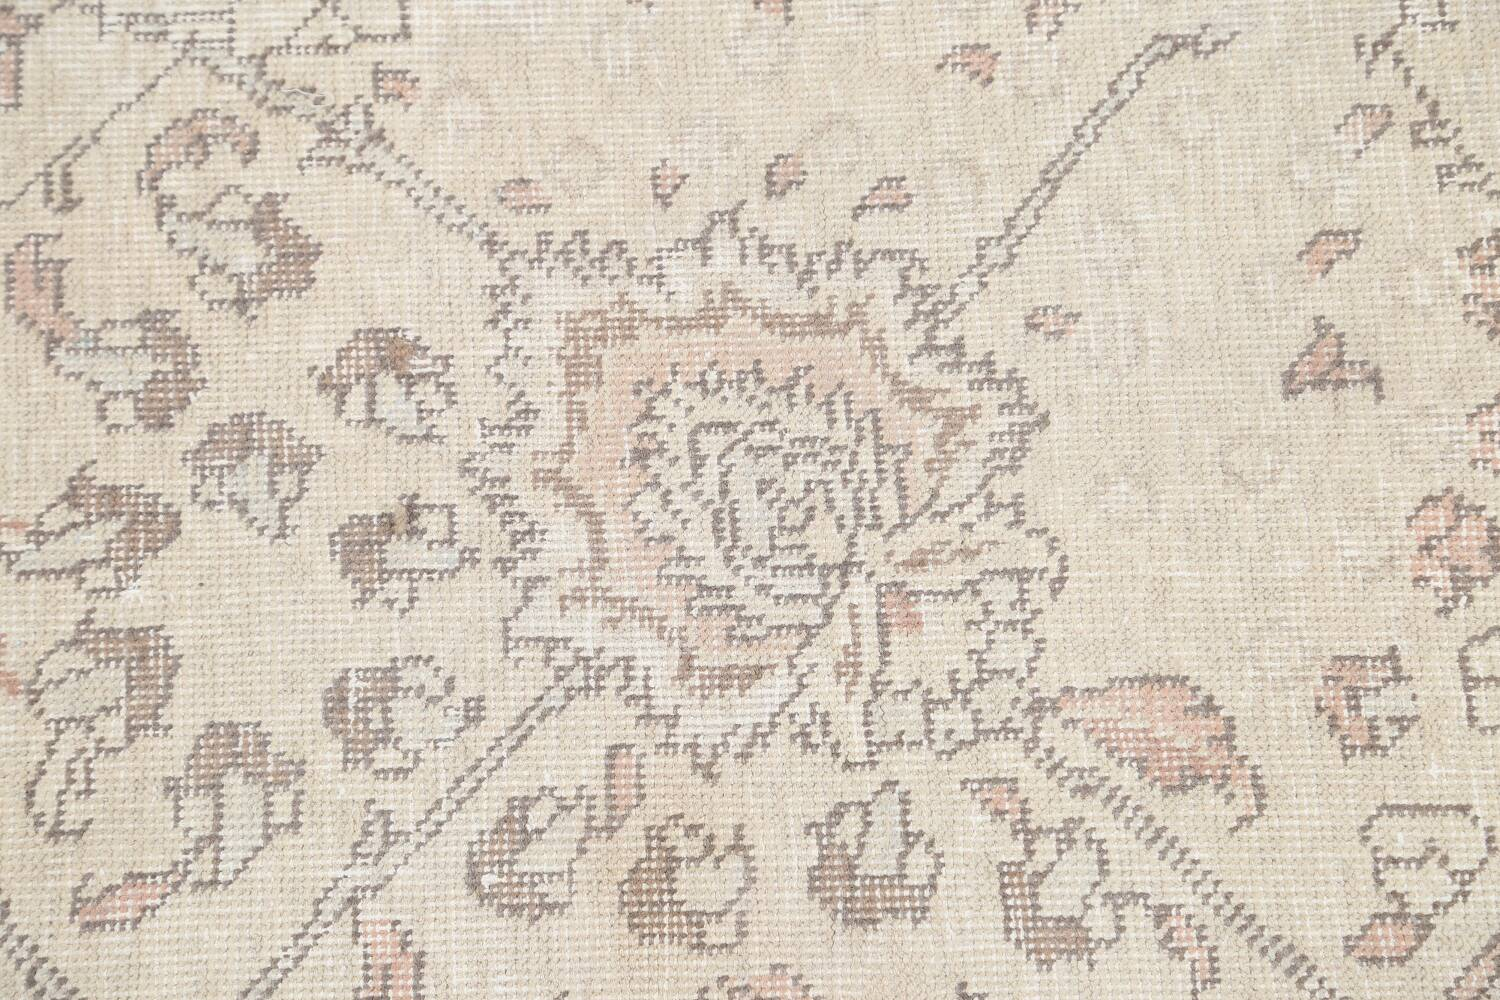 Floral Muted Tabriz Persian Area Rug 7x7 Square image 9